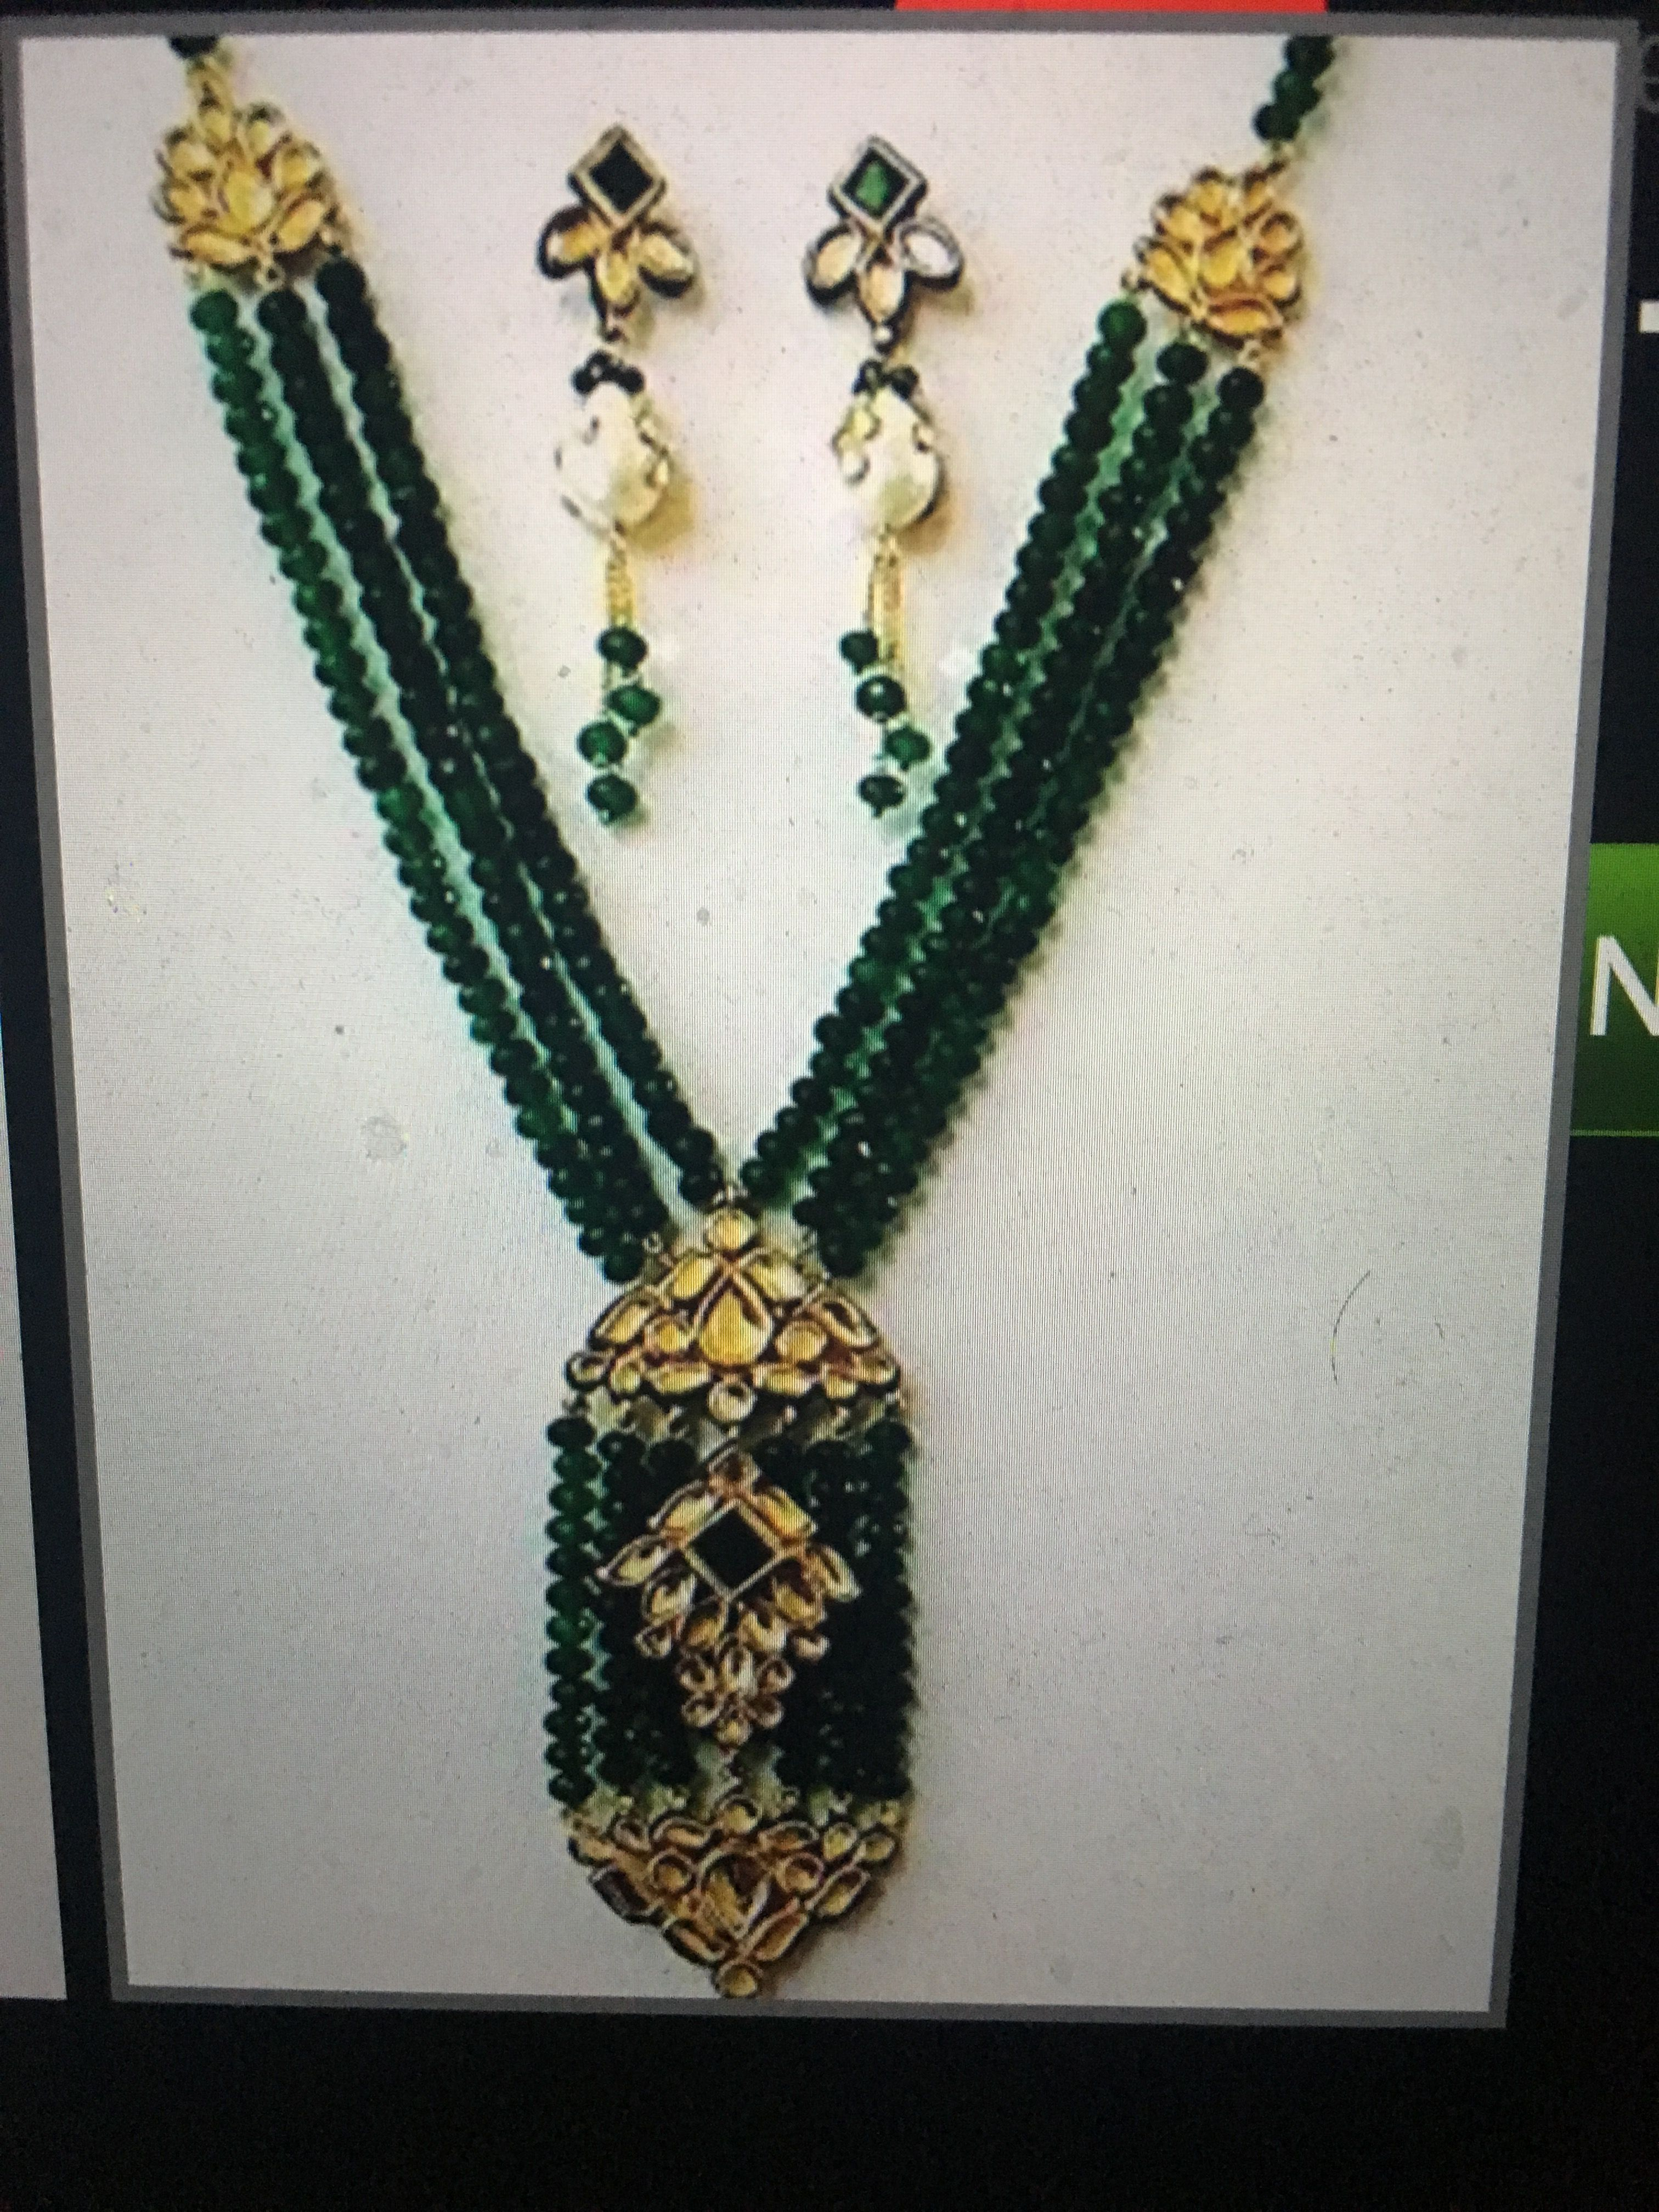 Pin by Bhoomi's on beadss Jewelry, Beads, Beaded necklace